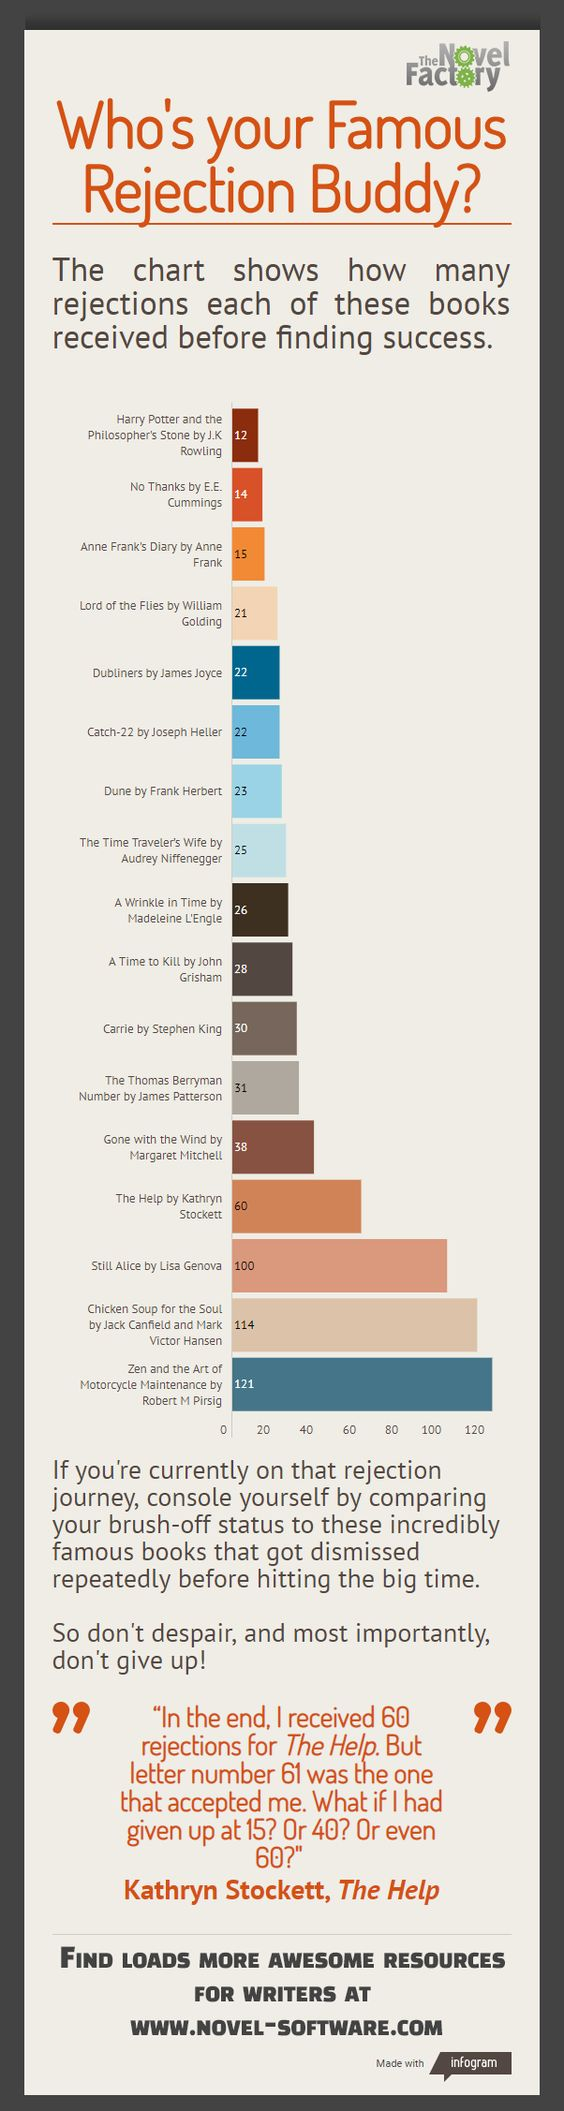 We've put together an infographic showing how many times famous books were rejected before they were published or found an agent. See where you would fall on this chart to reassure yourself that you're in good company when another rejection email pops into your inbox.